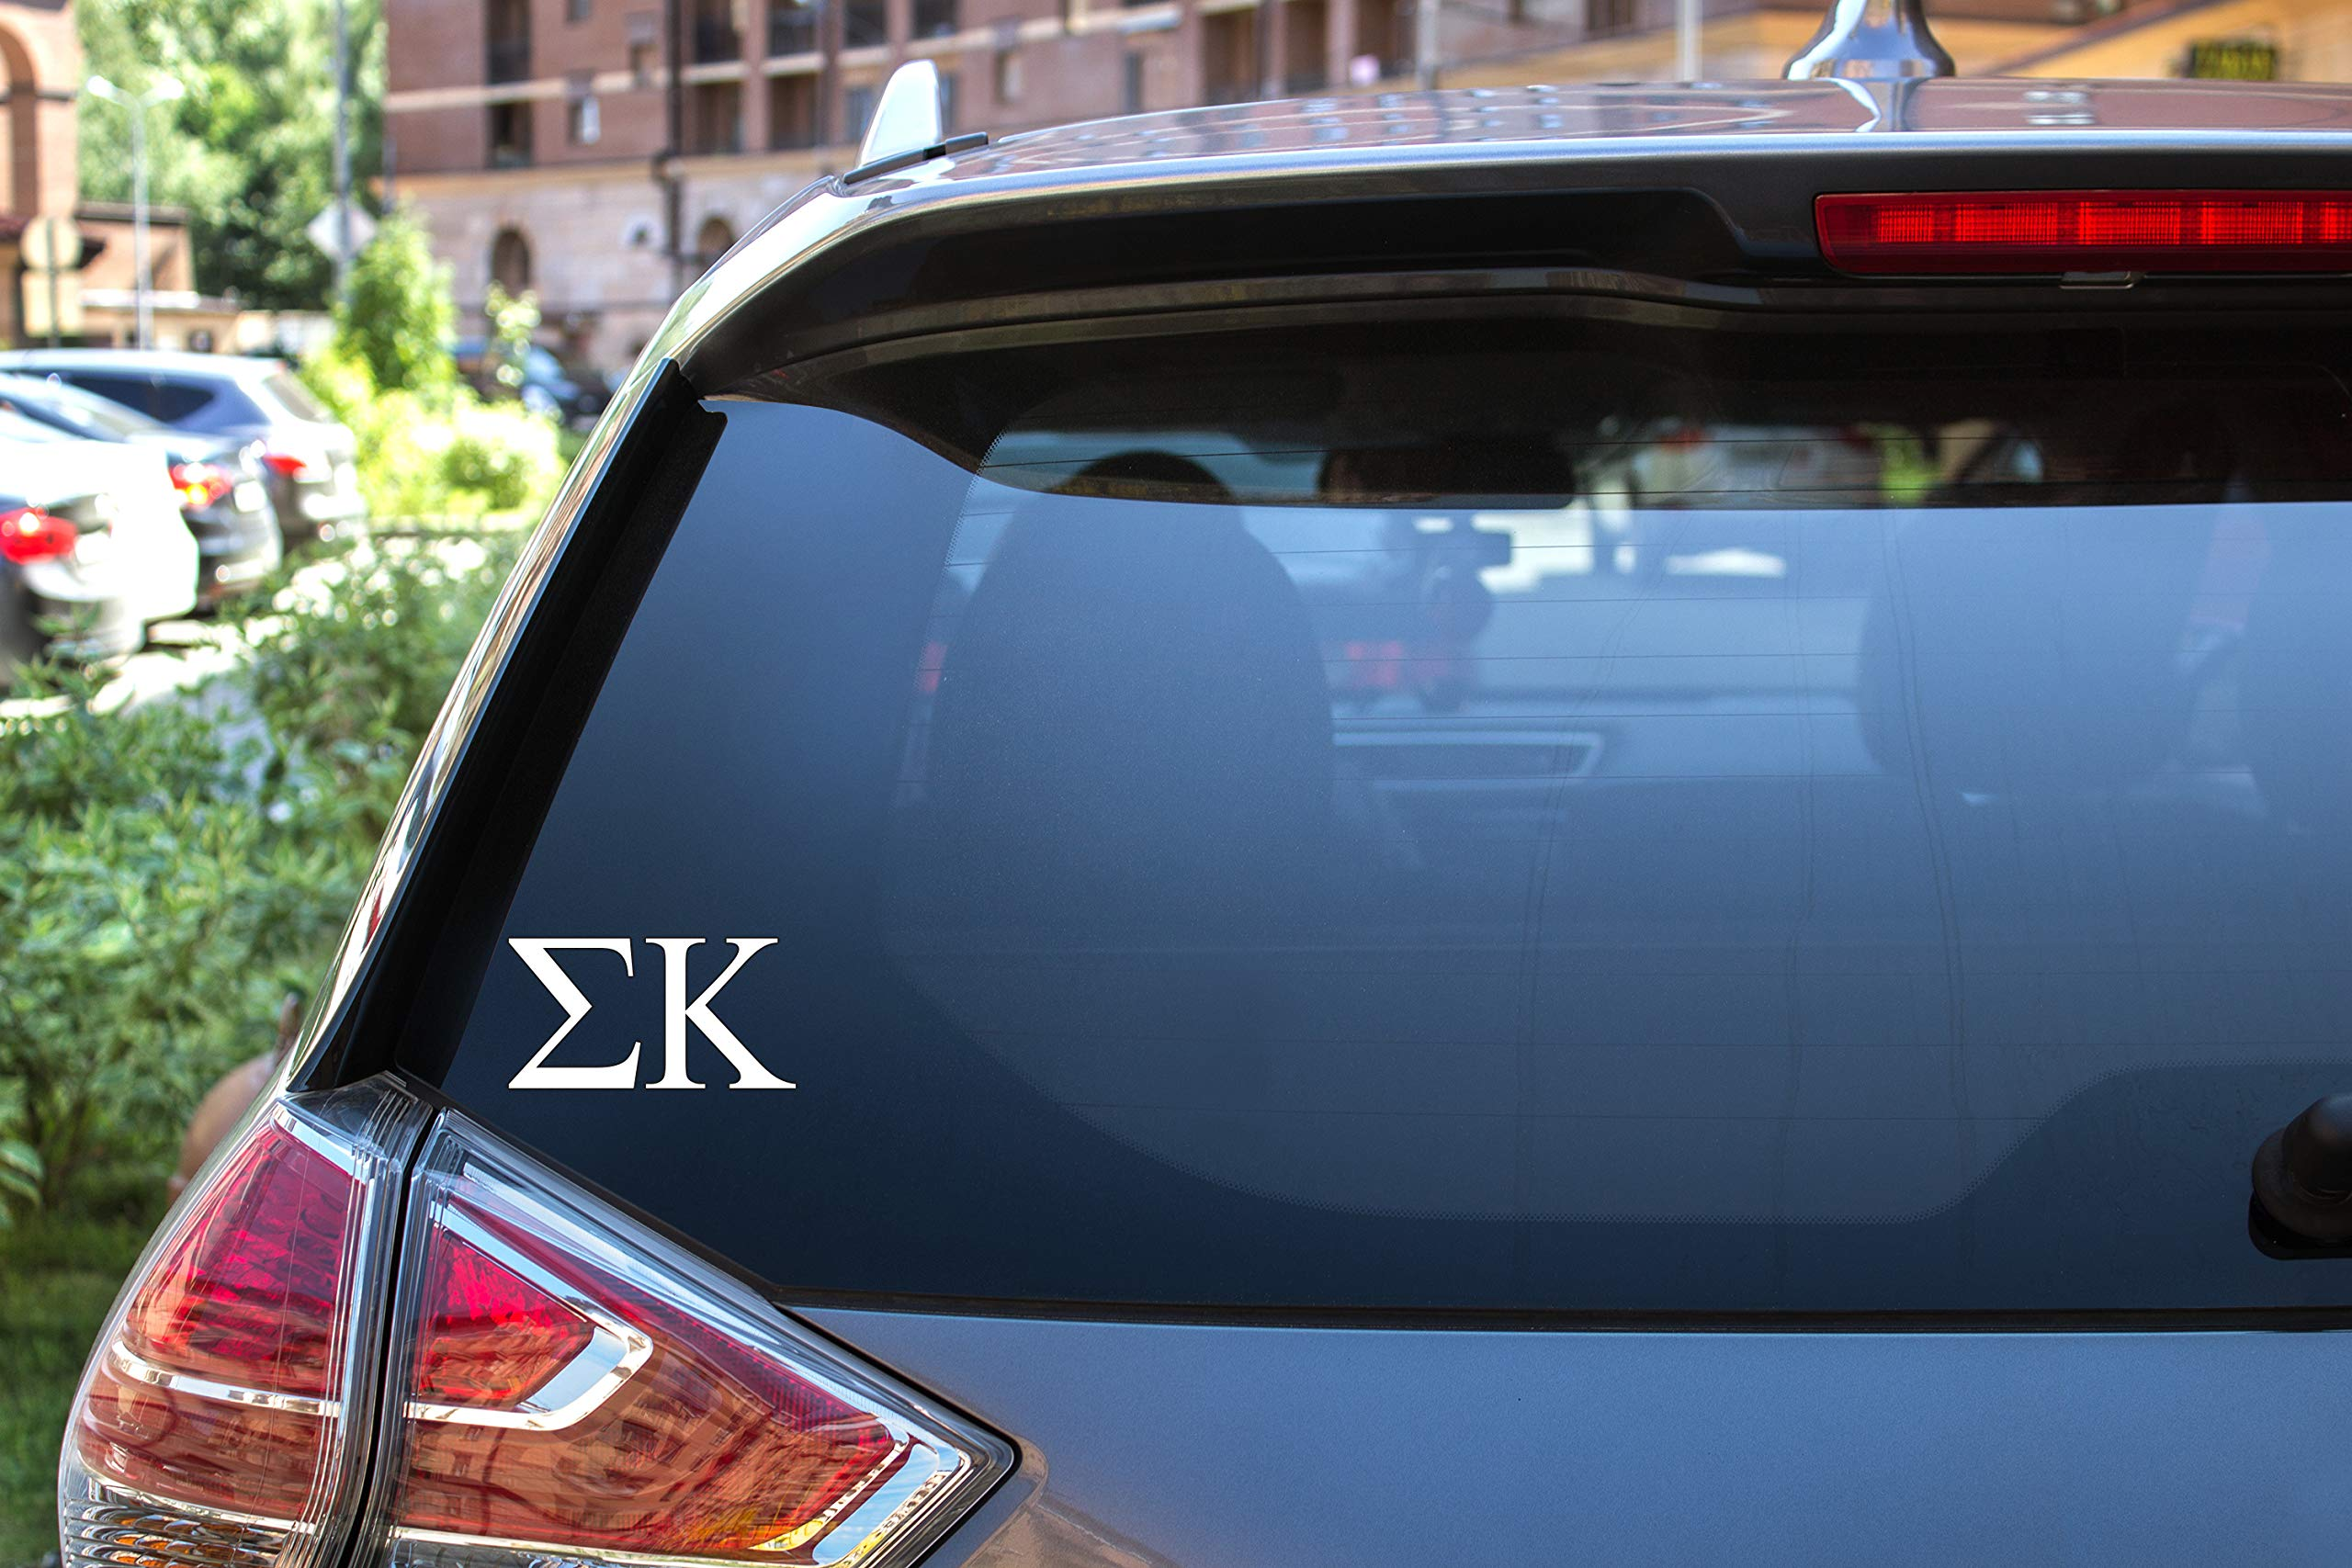 "Sigma Kappa Sticker Greek Sorority Decal for Car, Laptop, Windows, Officially Licensed Product, Monogram Design 2.5"" Tall - White"